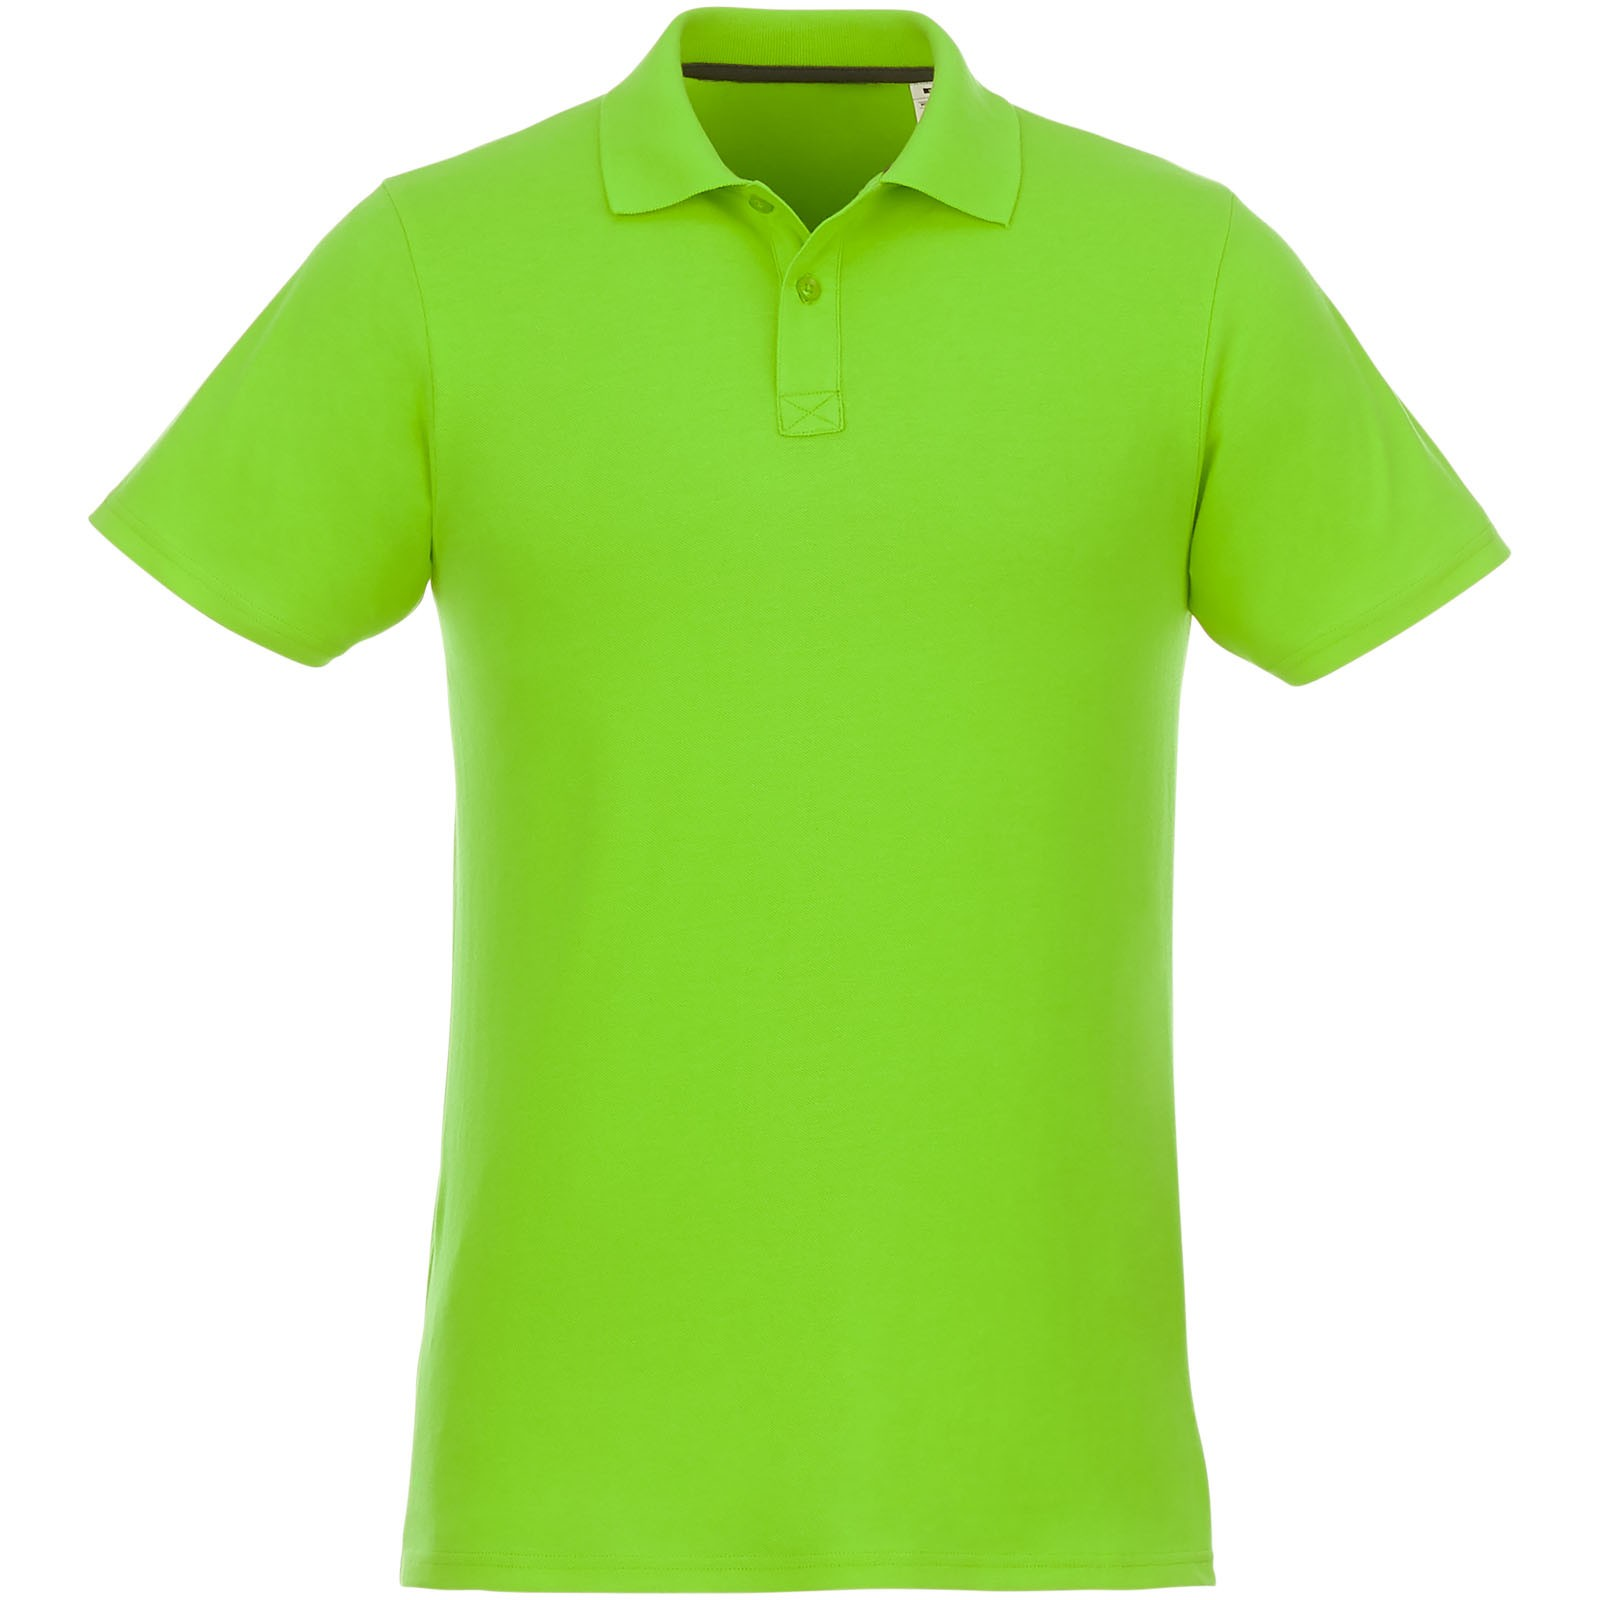 Helios short sleeve men's polo - Apple green / XS